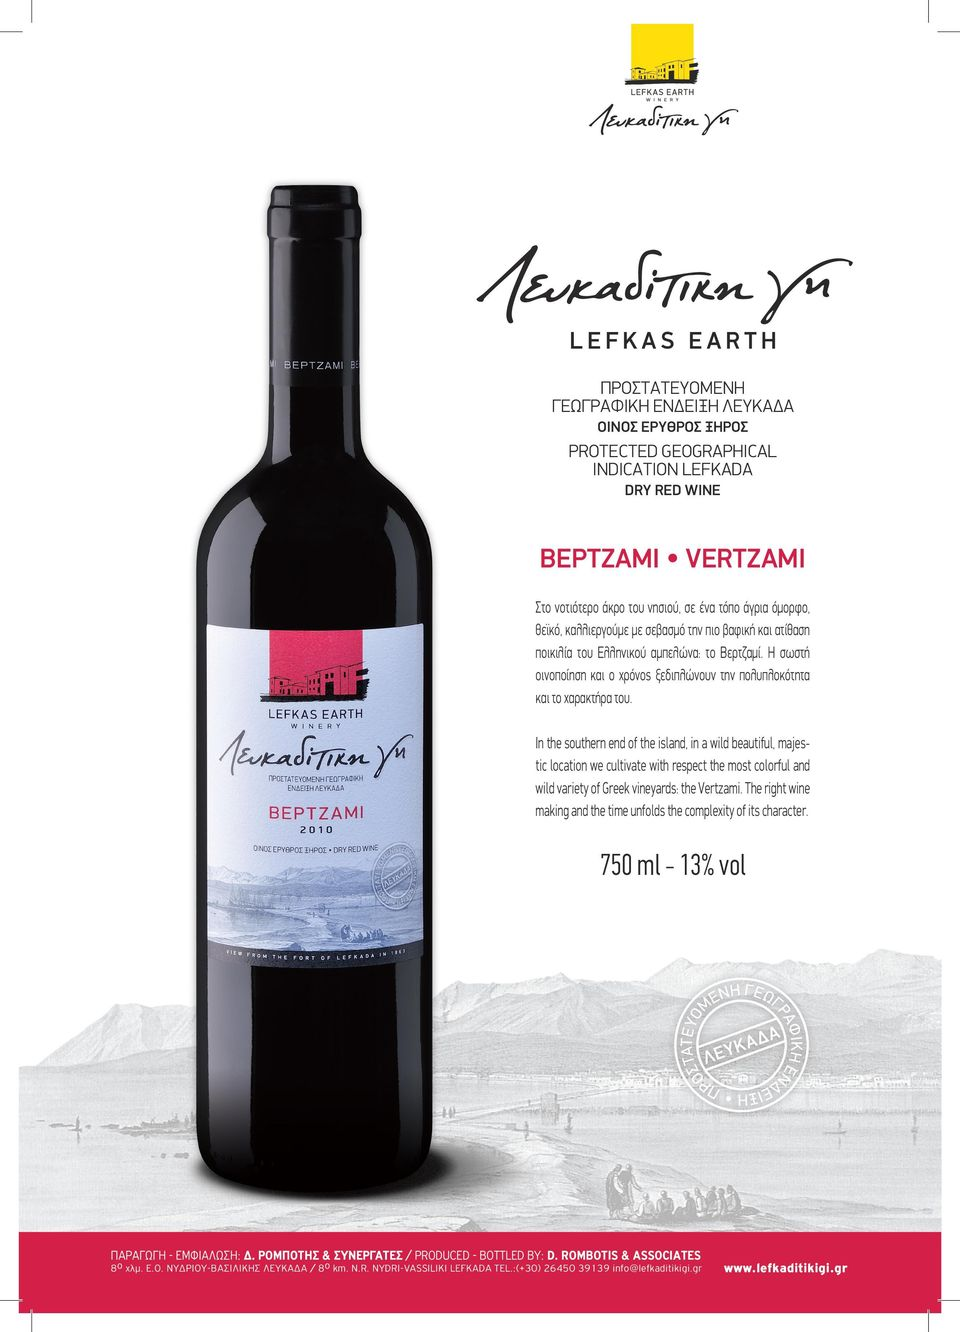 In the southern end of the island, in a wild beautiful, majestic location we cultivate with respect the most colorful and wild variety of Greek vineyards: the Vertzami.